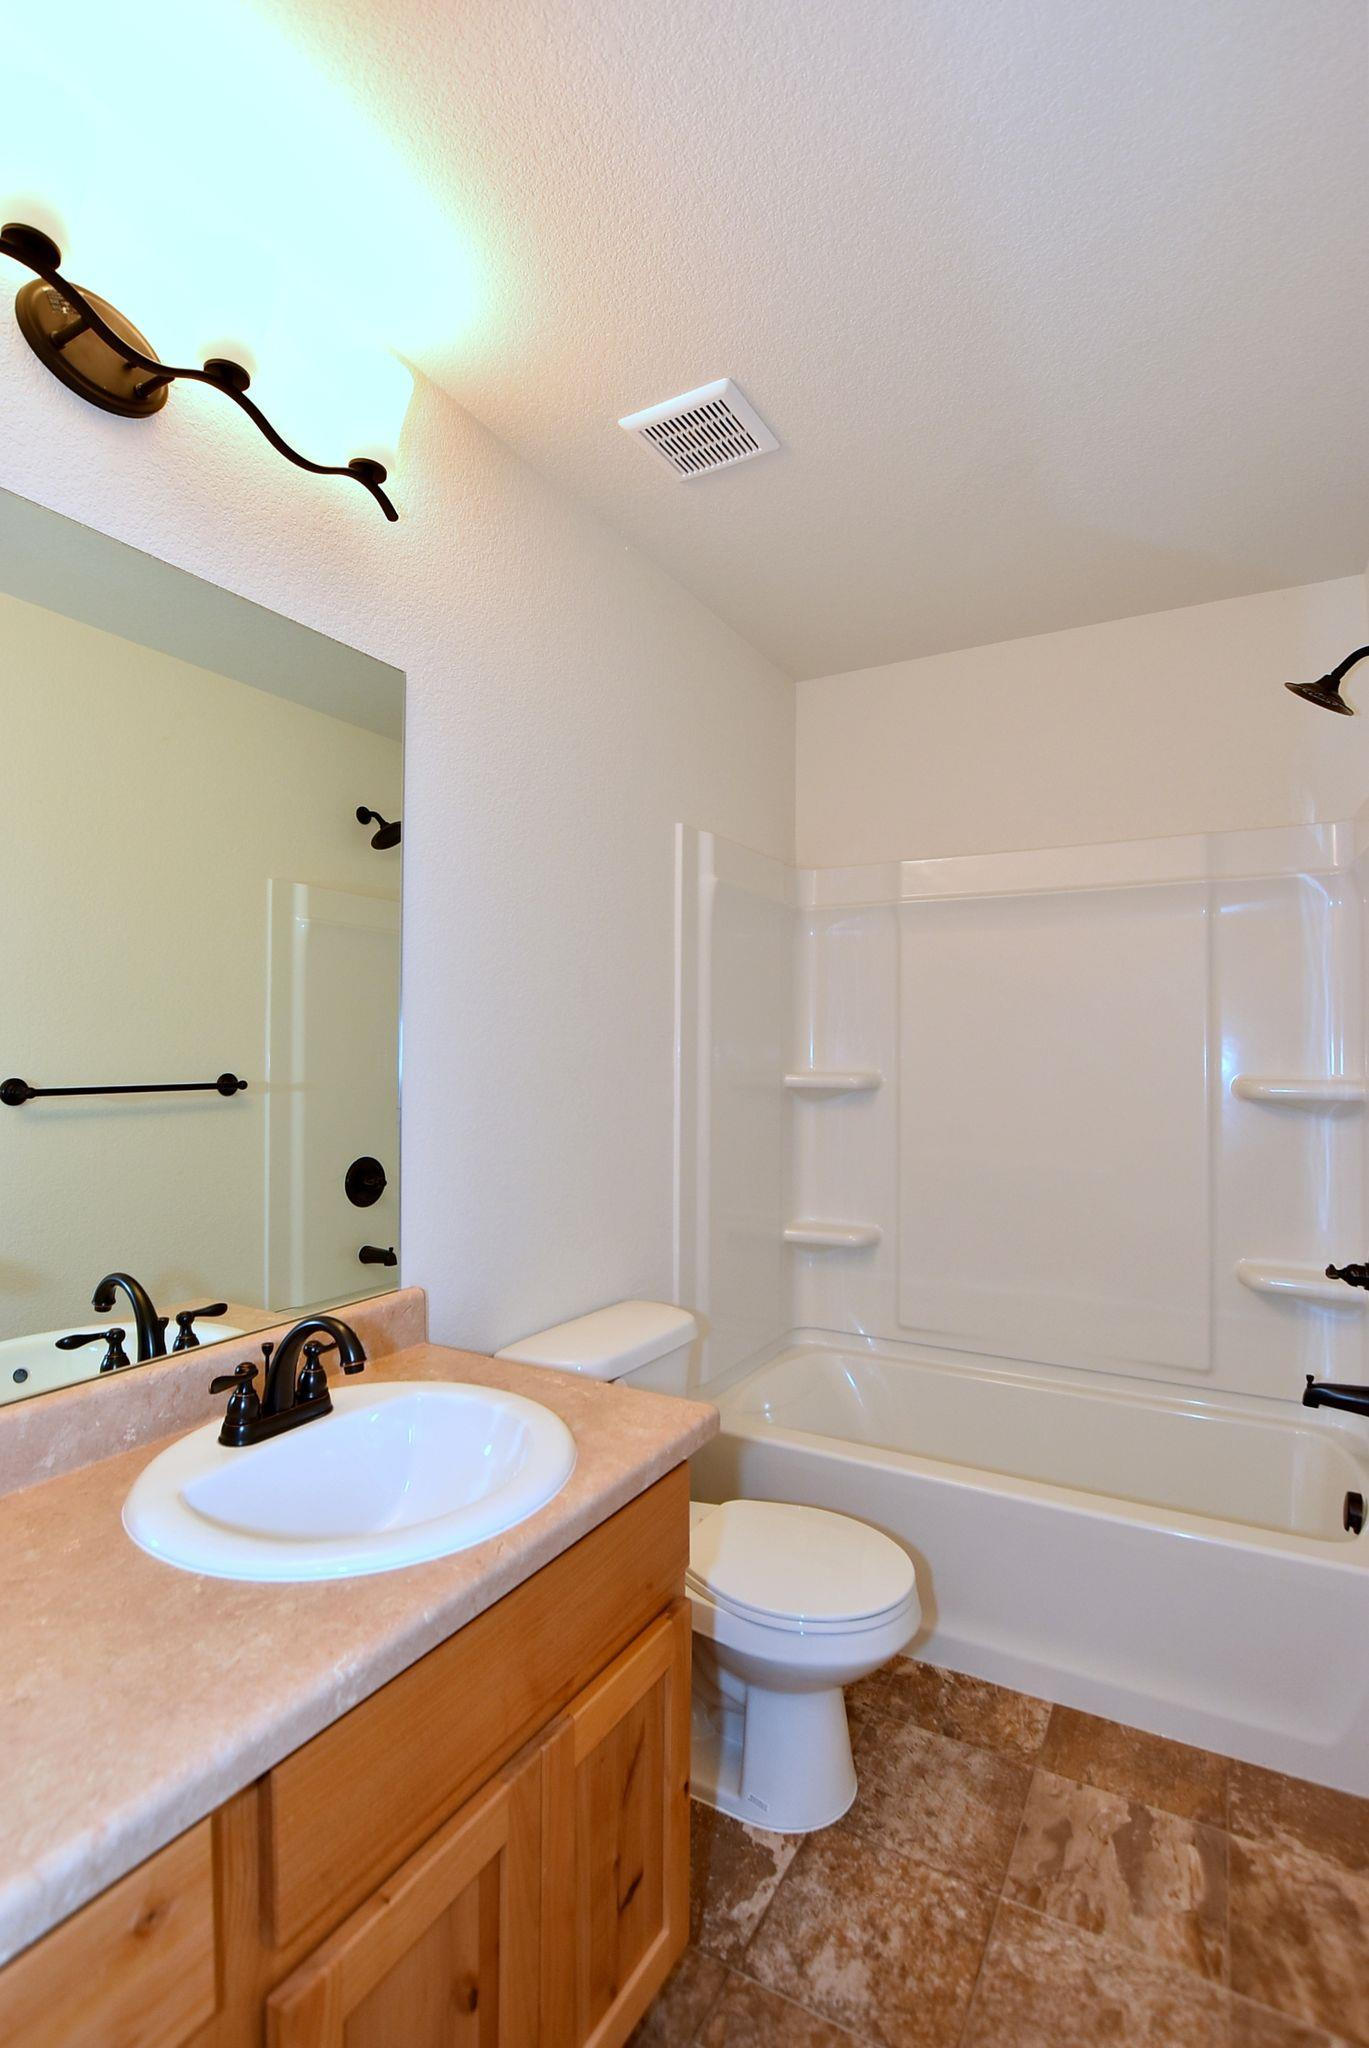 Bathroom featured in the Kansas By Journey Homes in Greeley, CO